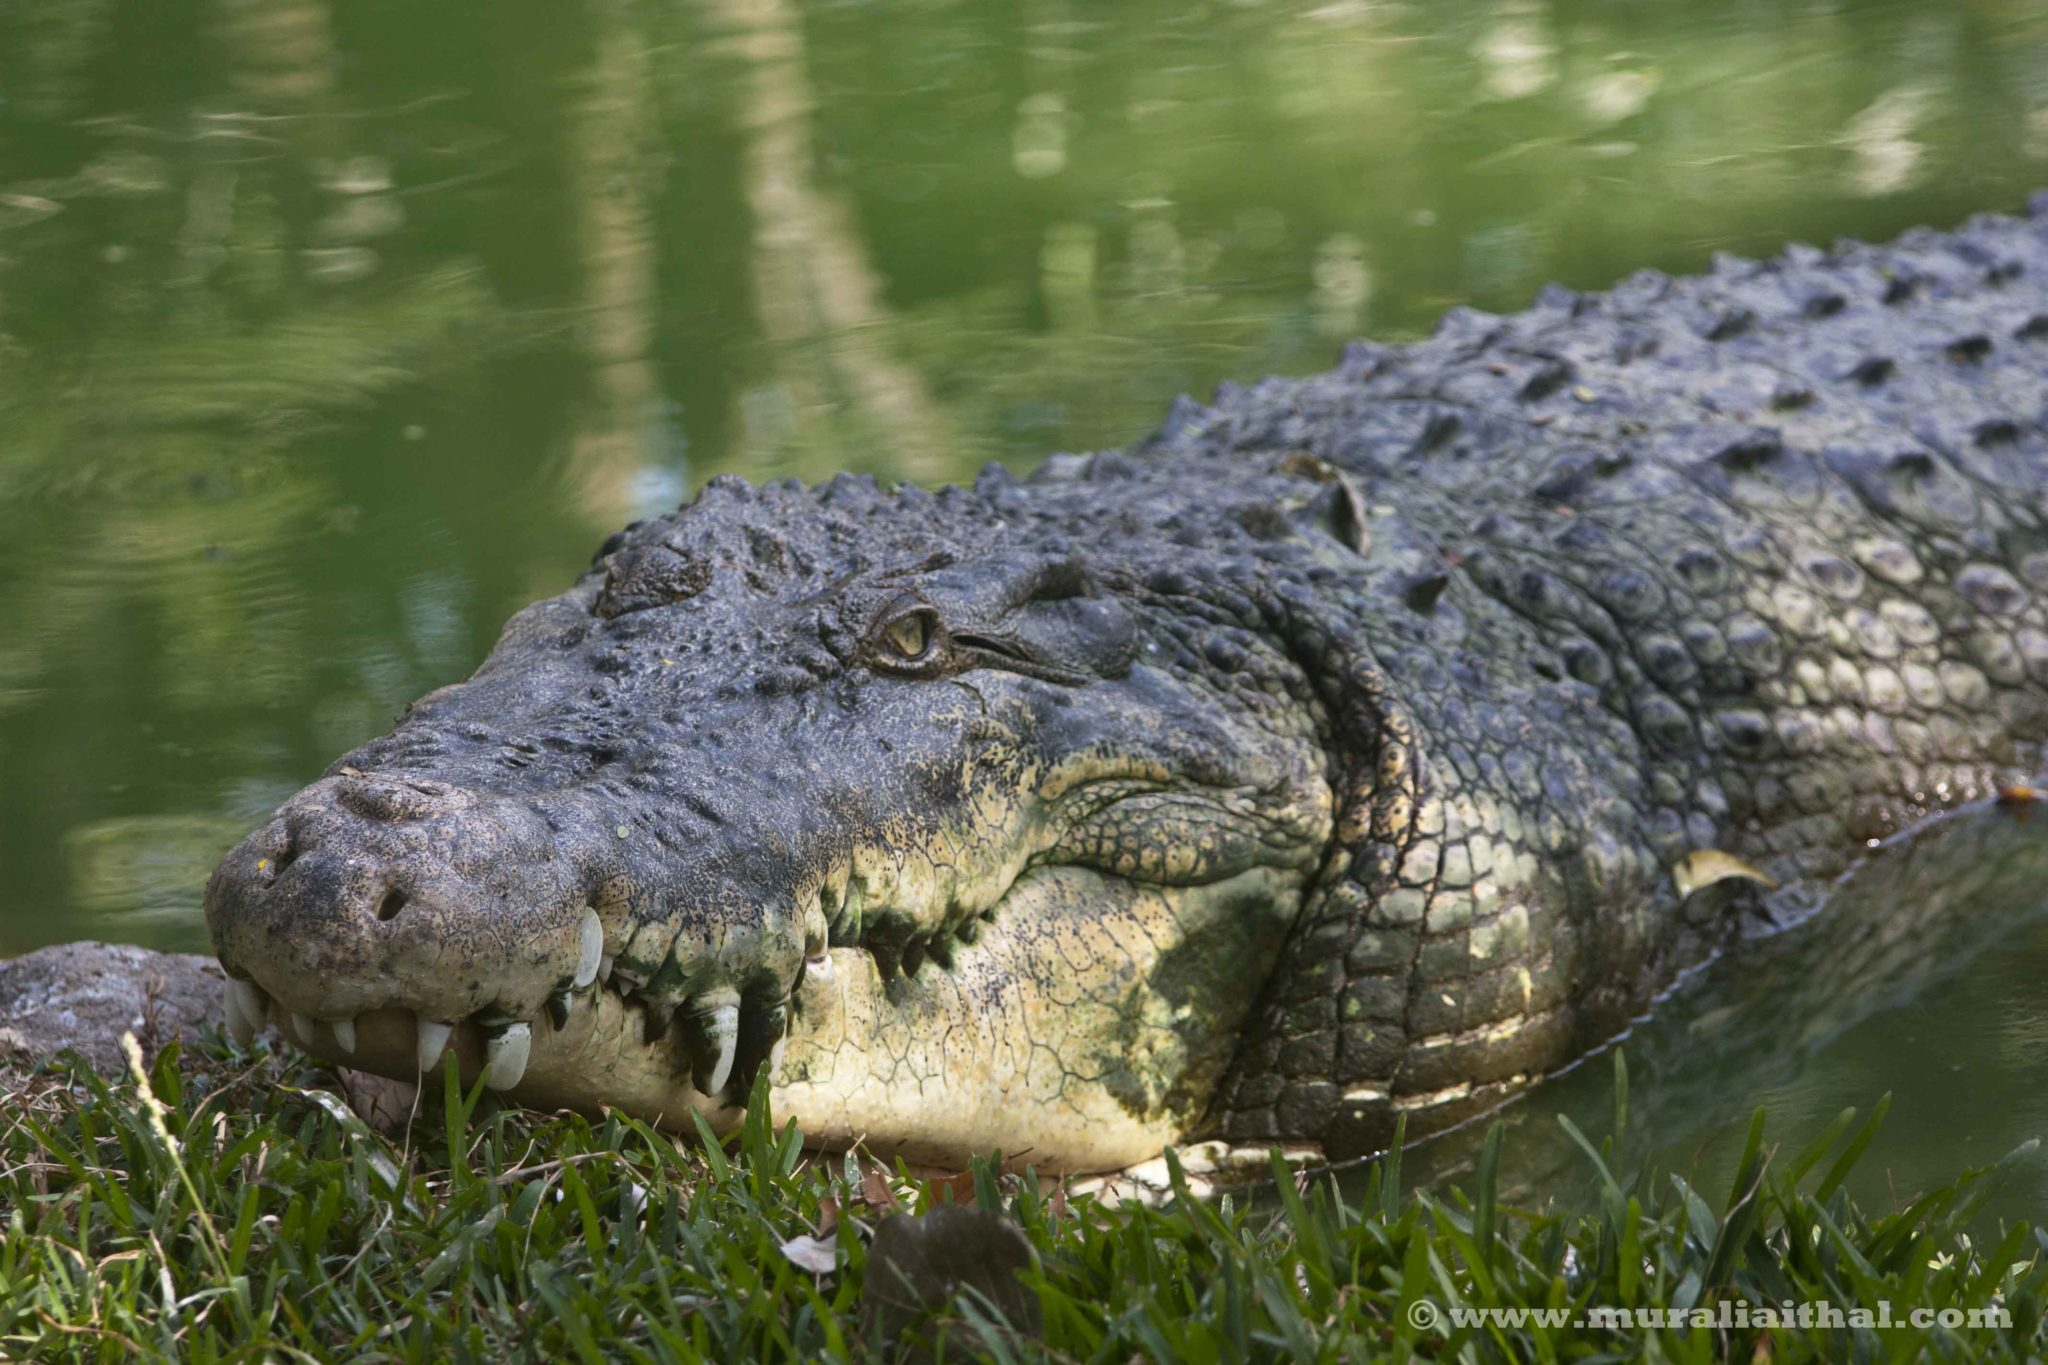 crocodile vs alligator Crocodiles and alligators are completely two different creatures the many differences between these two are shown here in a simple comparison table.